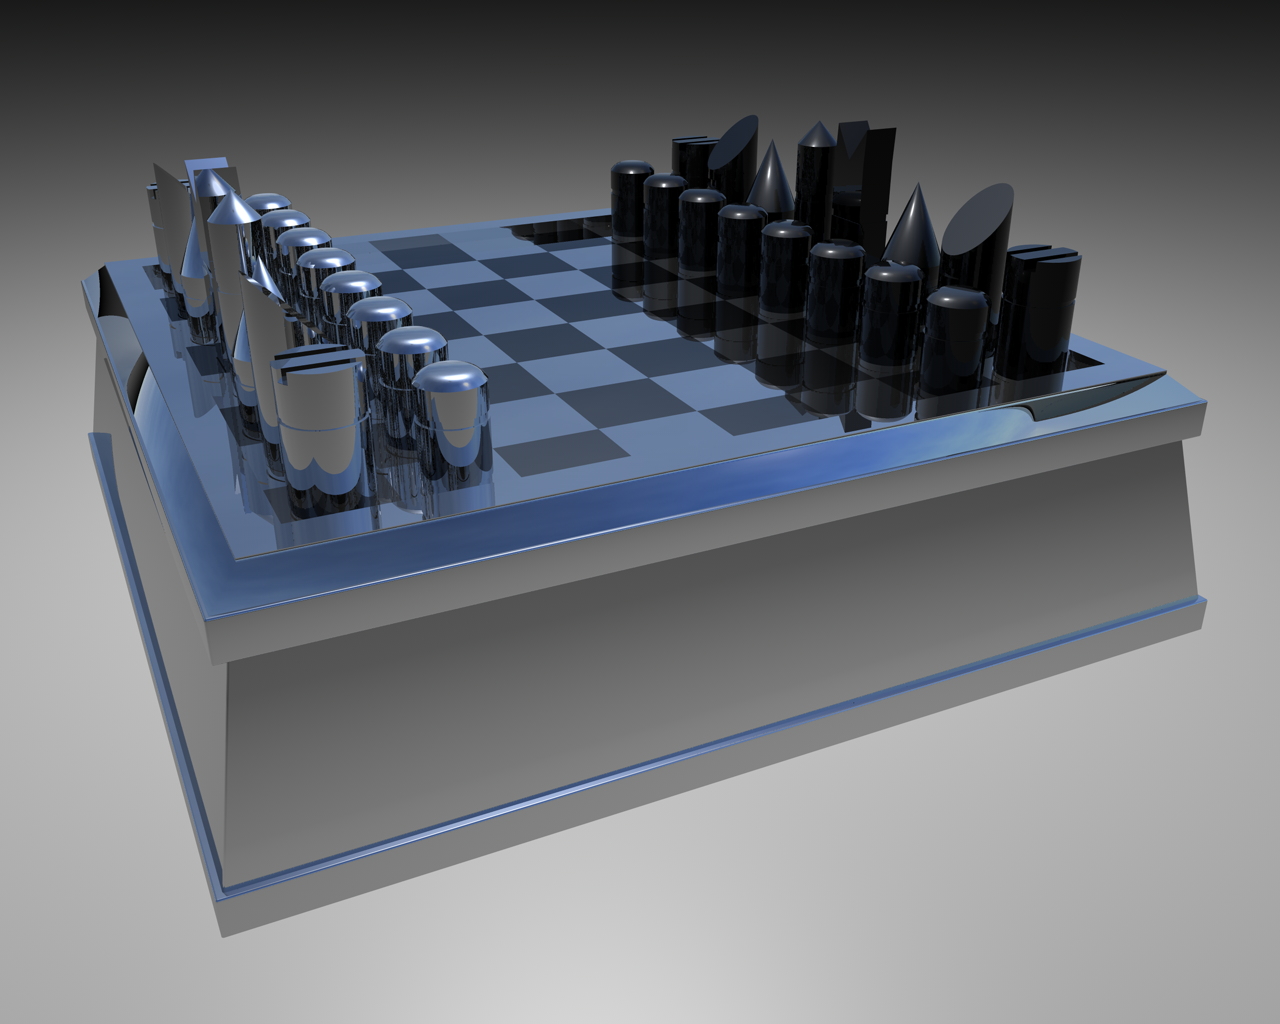 Chess set simple by edthegooseman on deviantart - Simple chess set ...